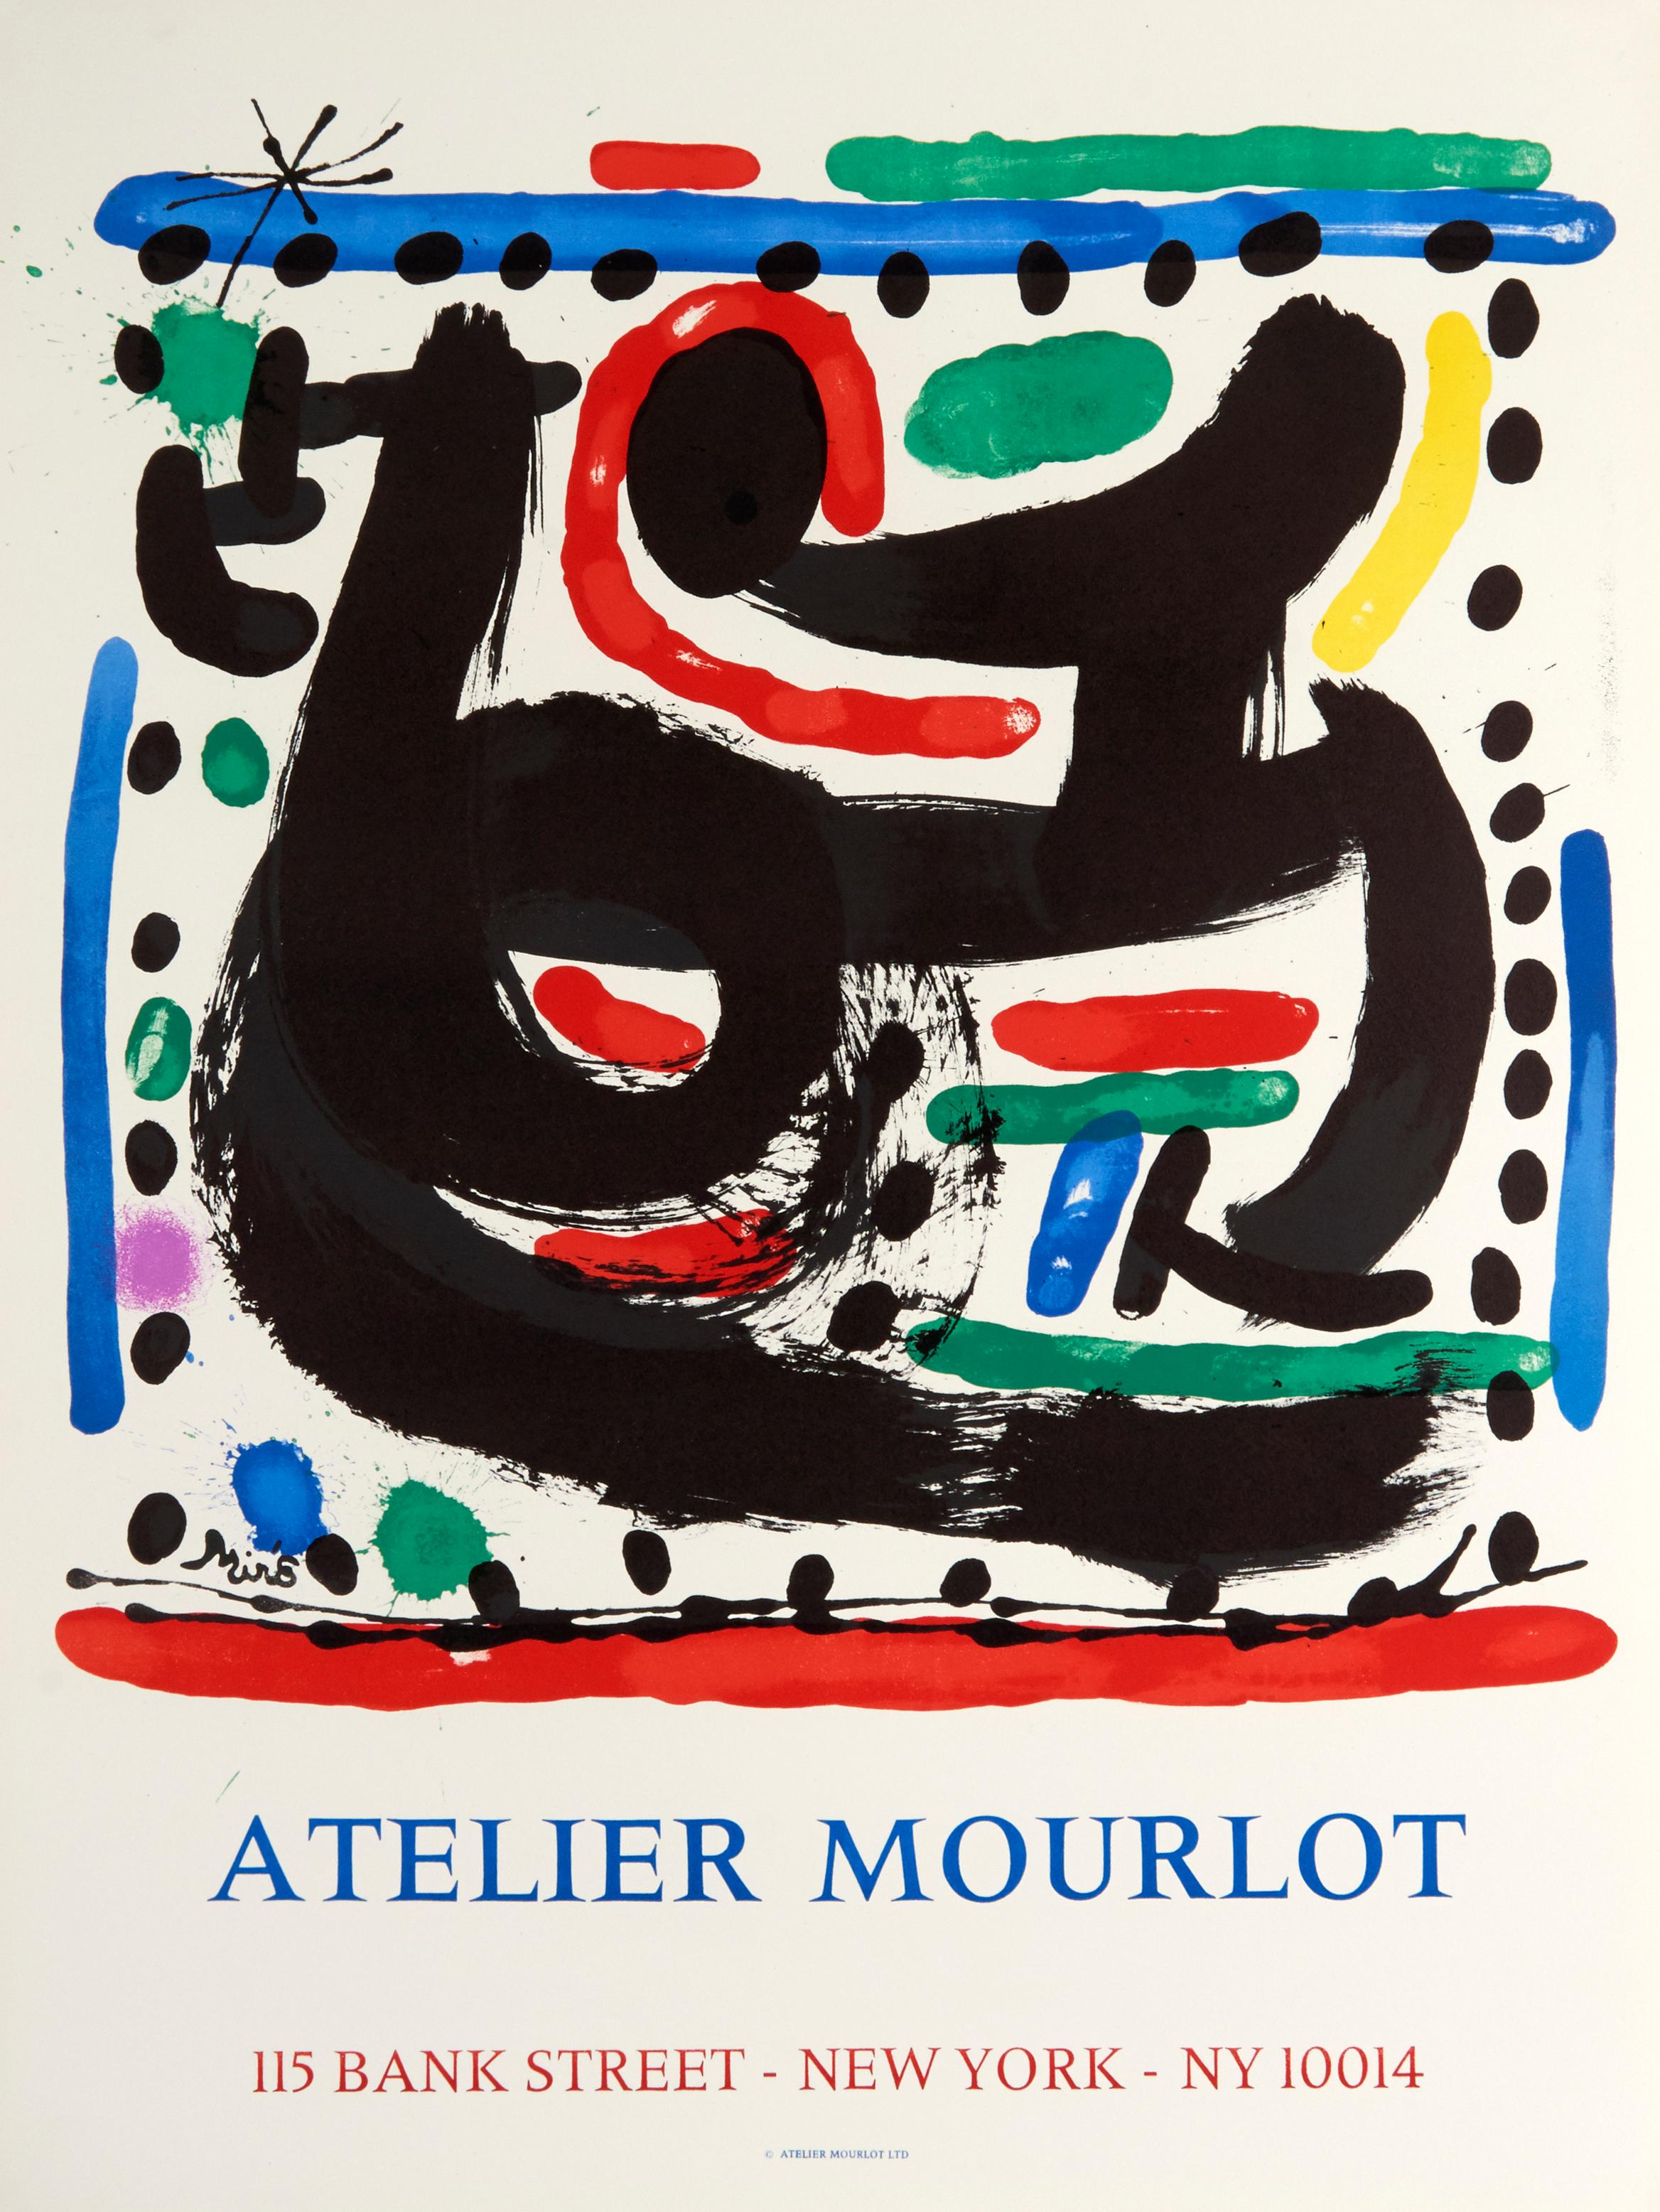 Atelier Mourlot Bank Street by Joan Miro - colorful abstract